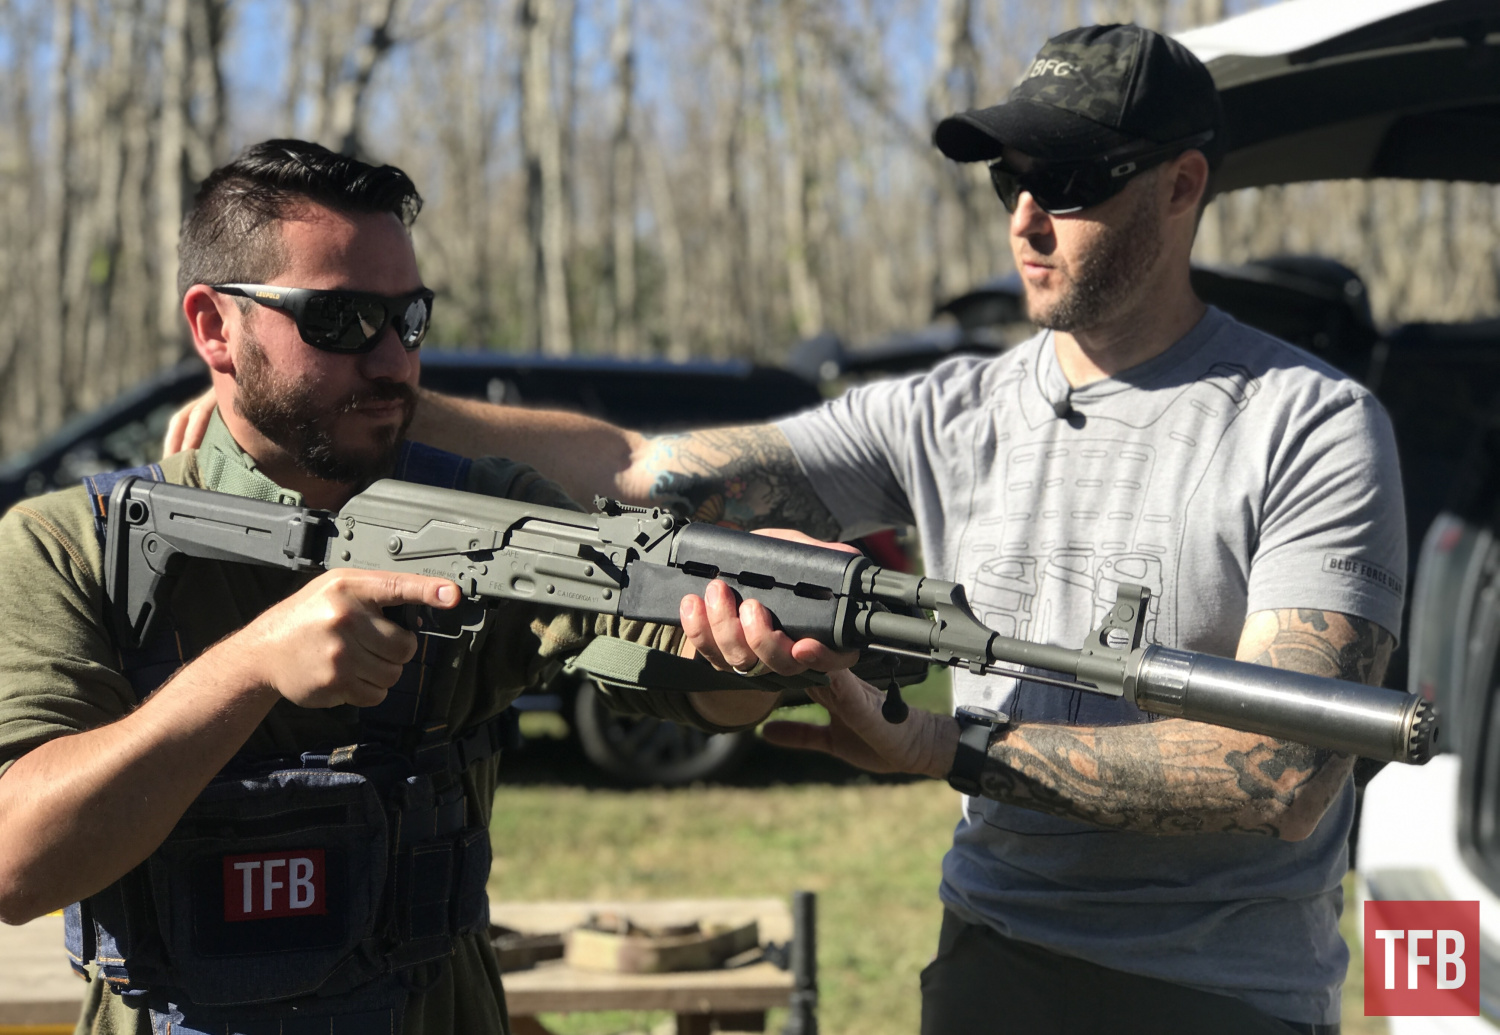 Chris Sizelove (right), Blue Force Gear's Director of Training, brought a wealth of expertise to share with us in this class at GunFest 2021.